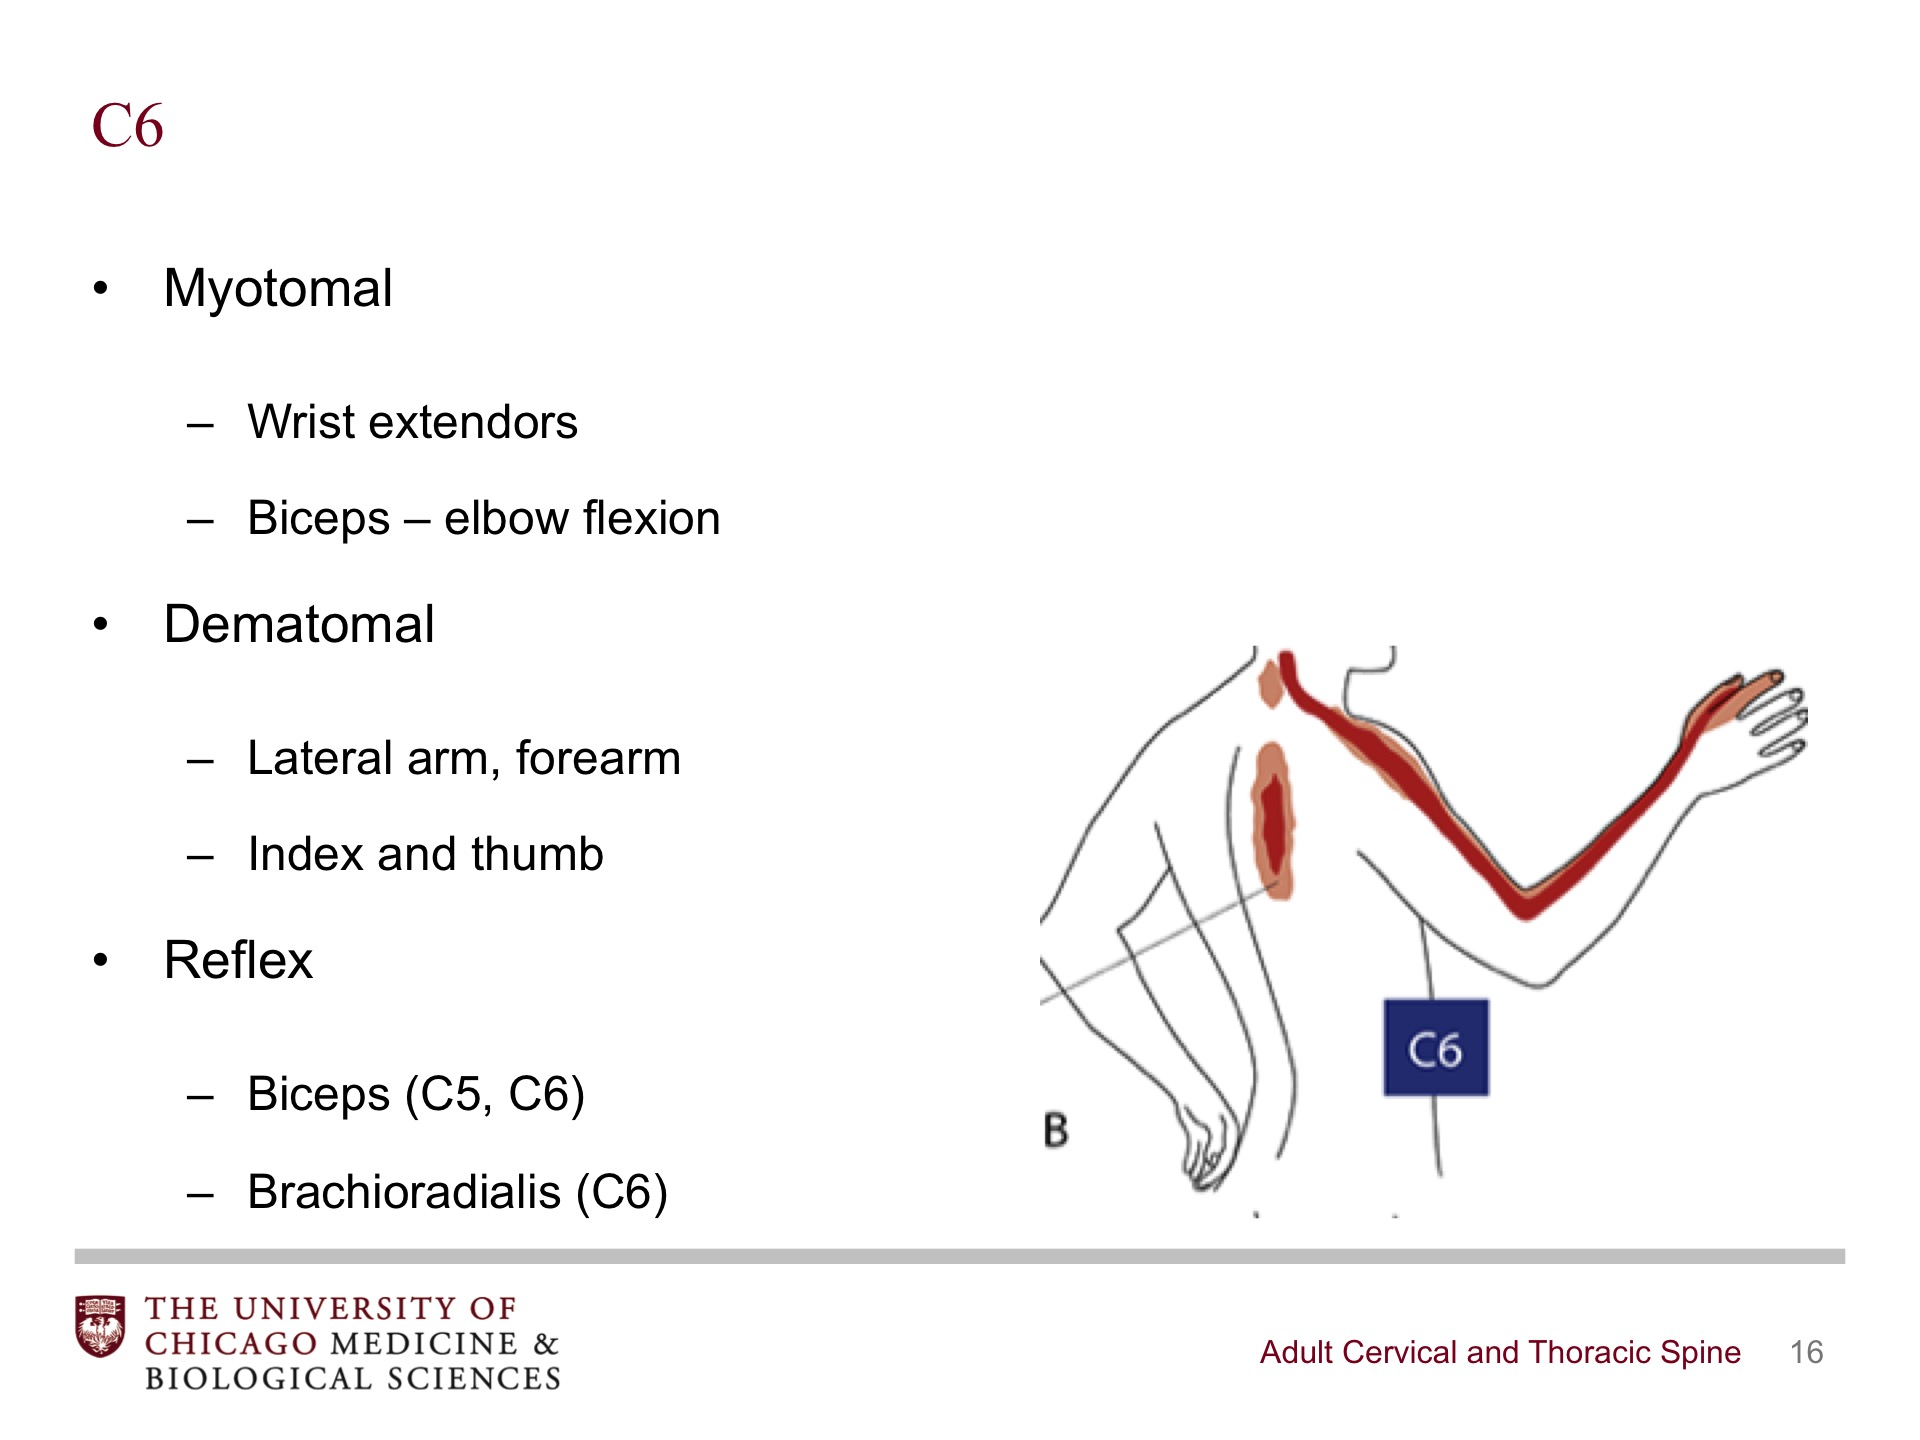 Adult Cervical And Thoracic Spine Broadcastmed